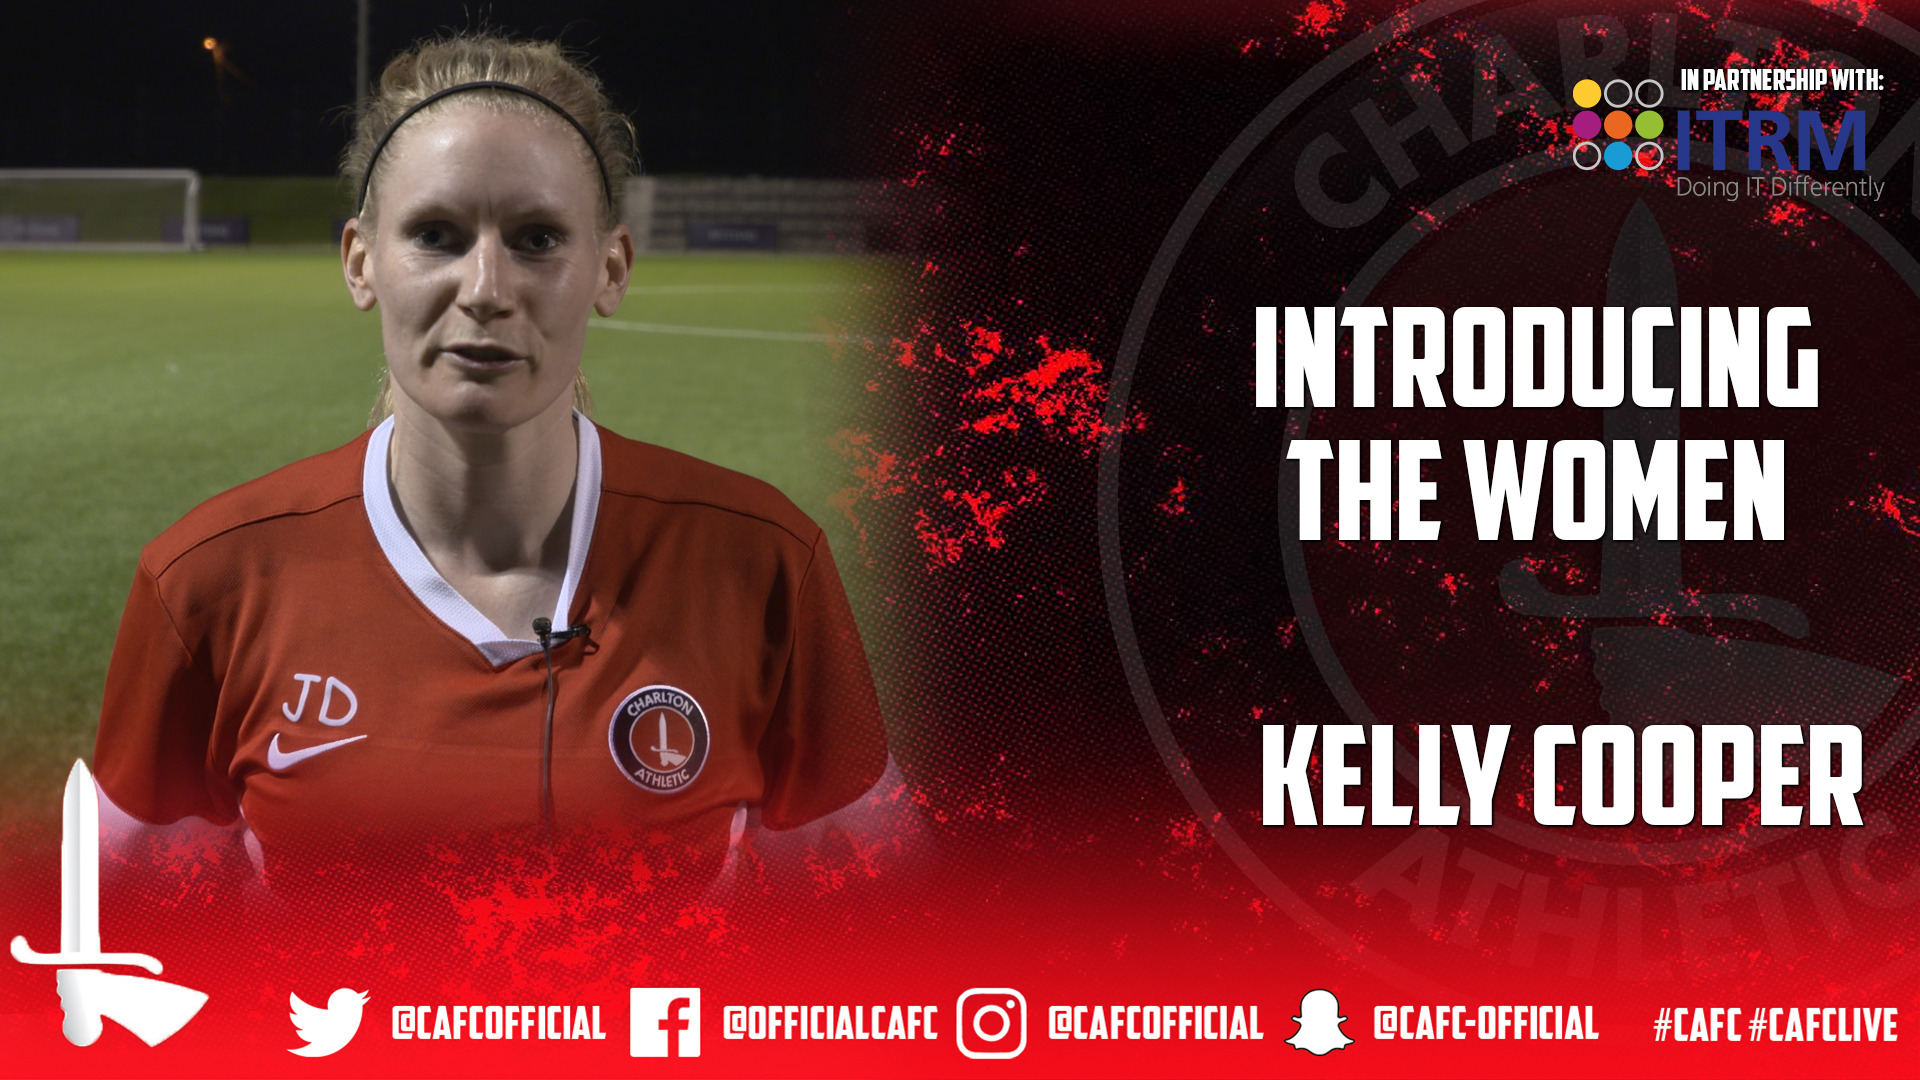 INTRODUCING THE WOMEN |  Kelly Cooper